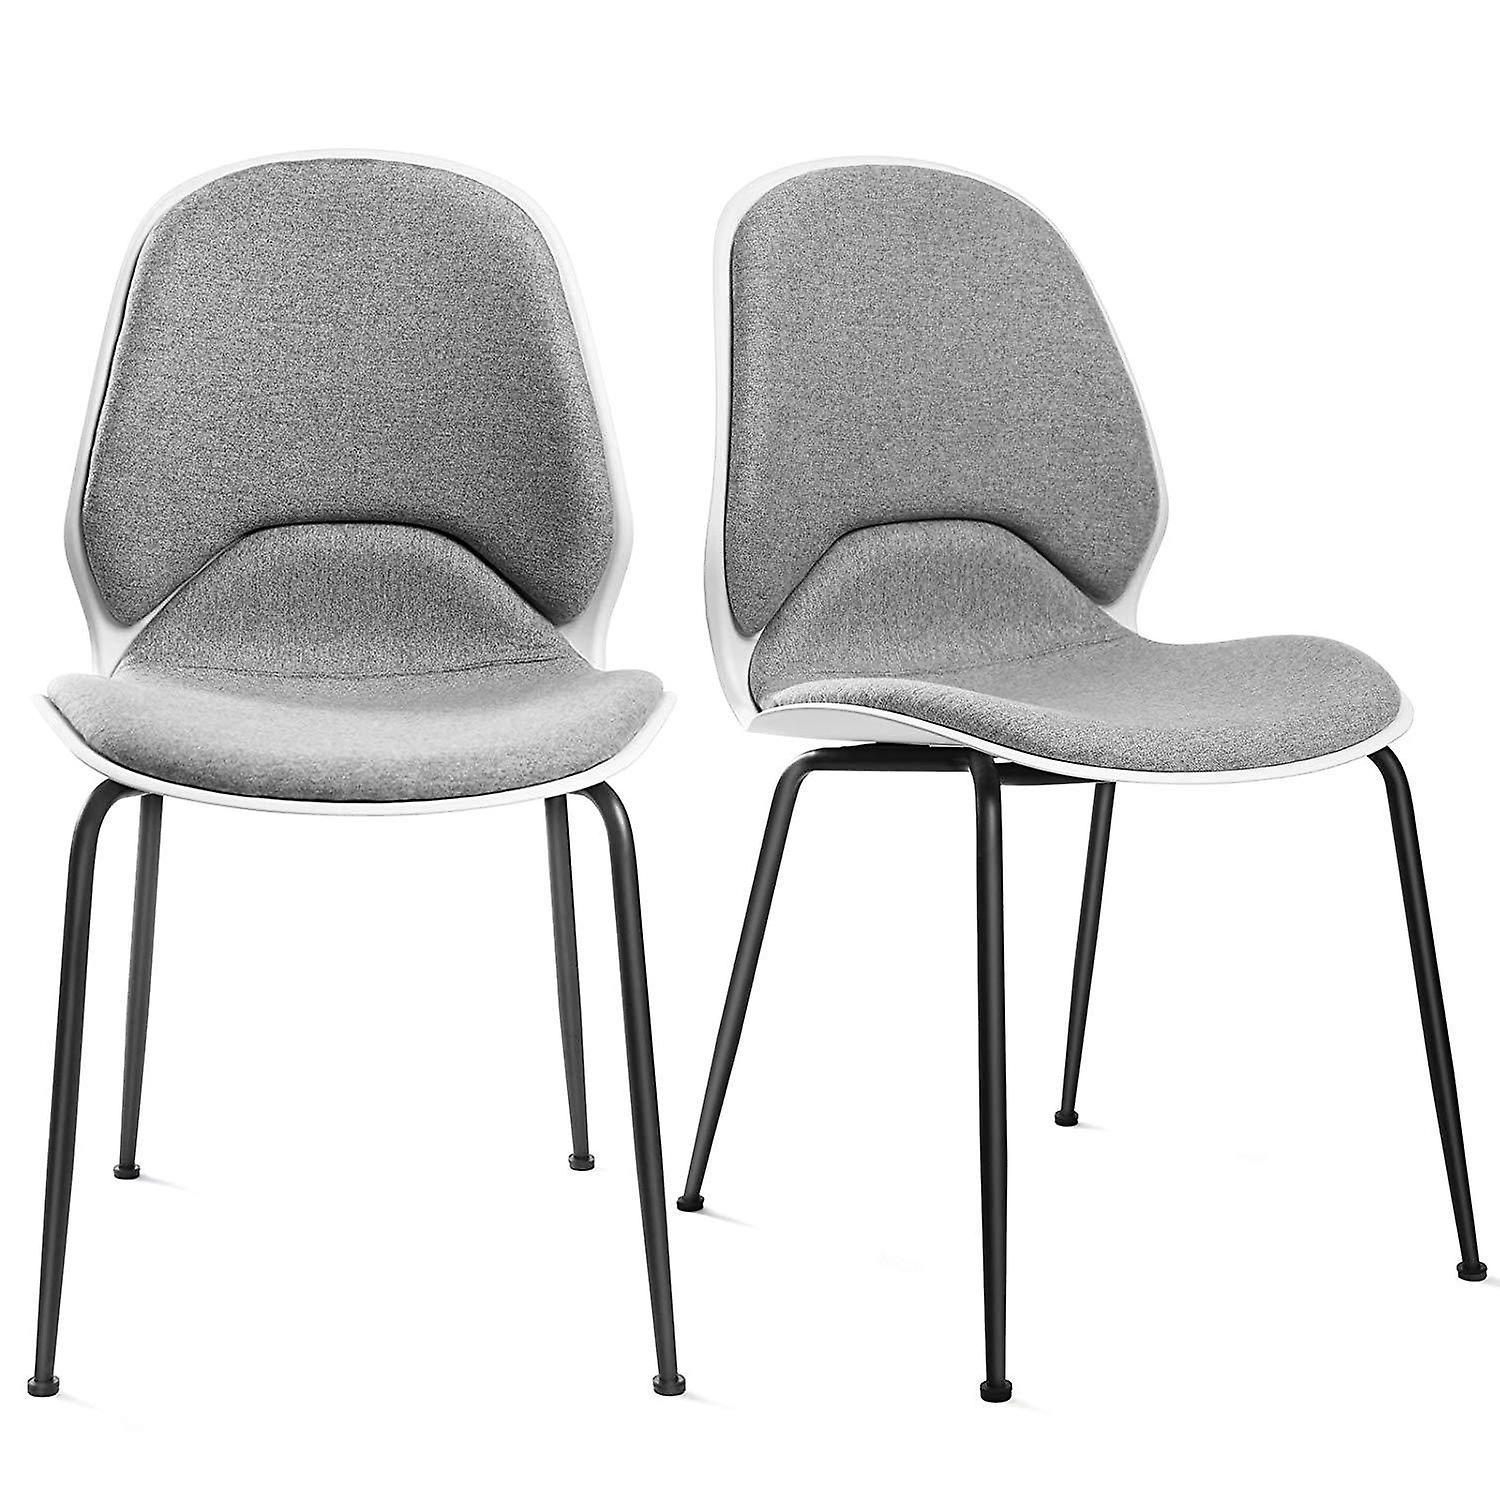 Set of 2 ergonomic dining chairs with soft seat